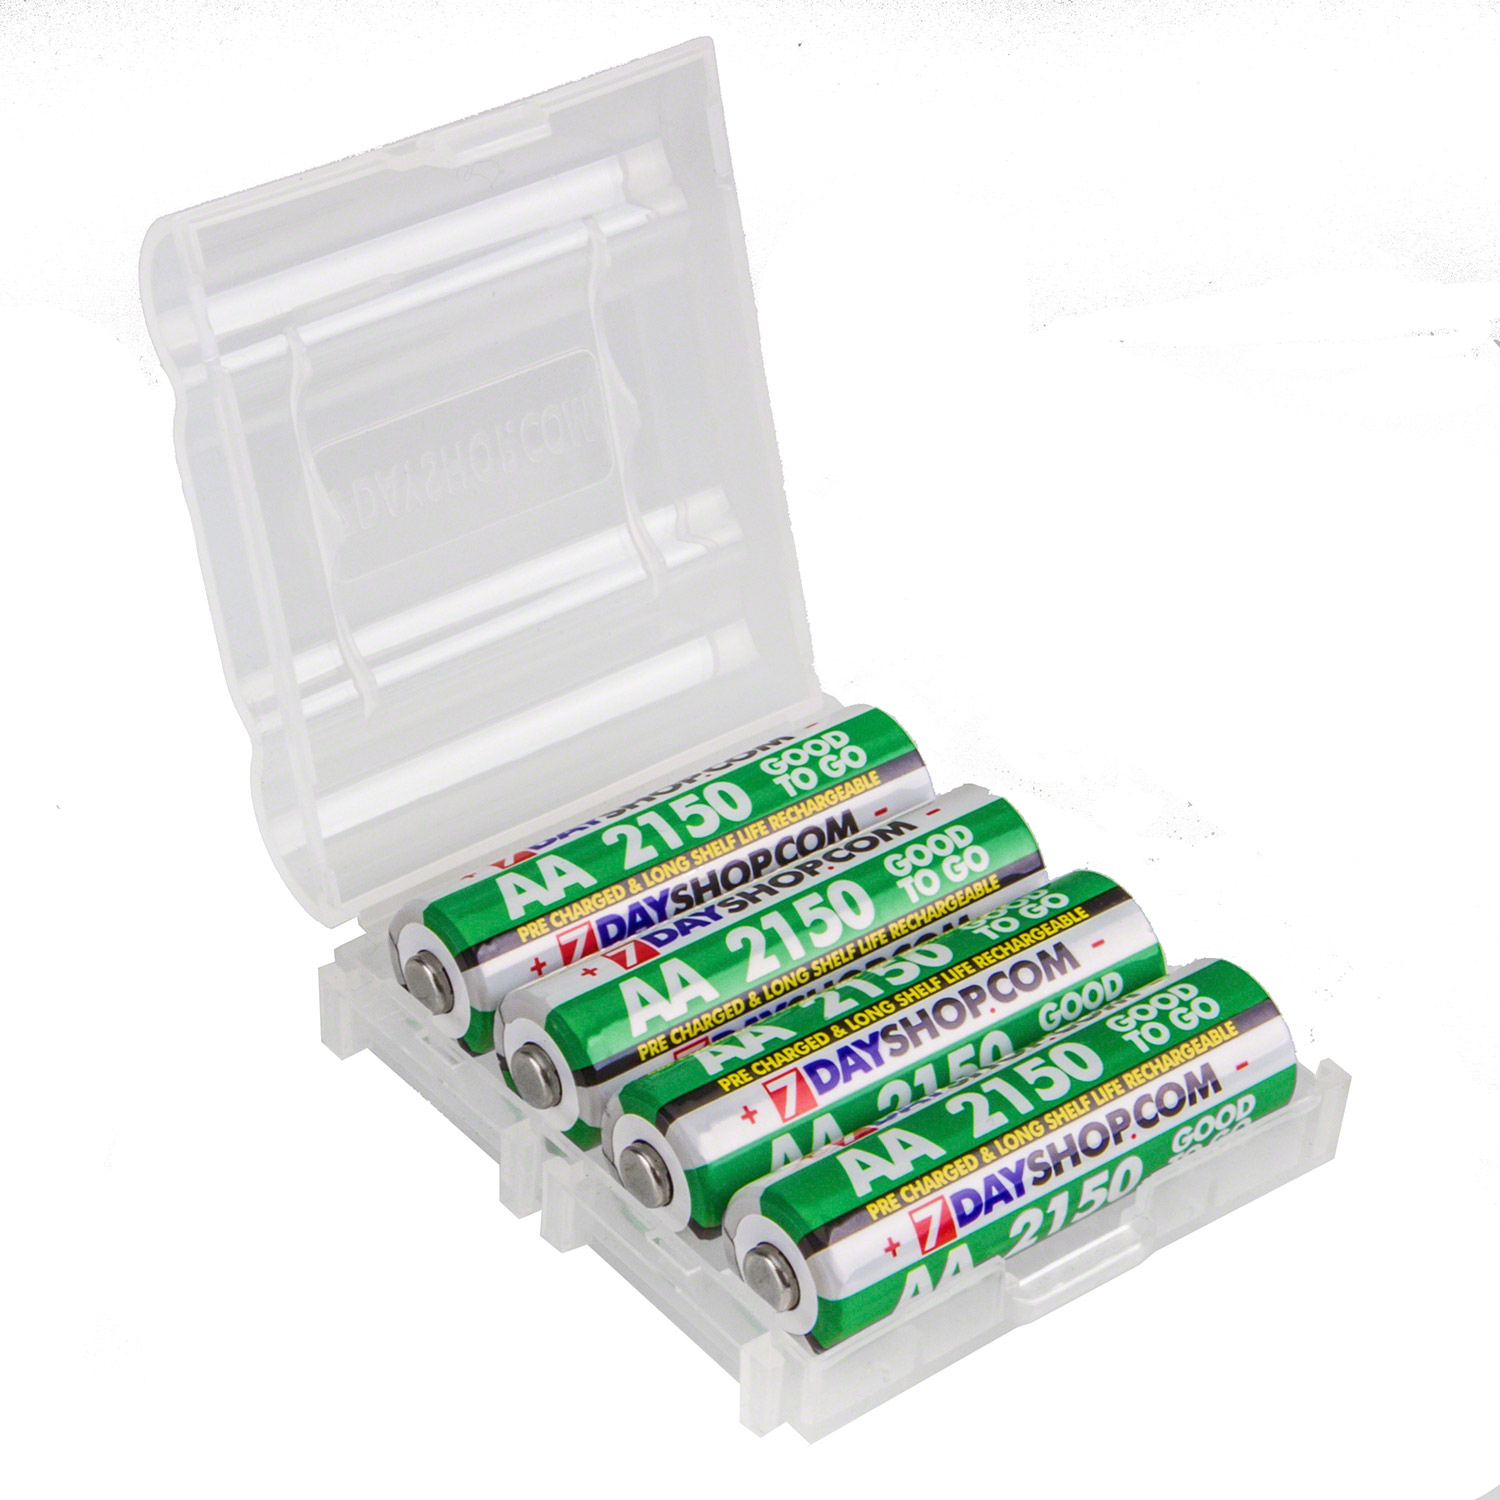 7dayshop GOOD TO GO AA PreCharged Long Life Rechargeable Batteries 2150mAh  4 Pack